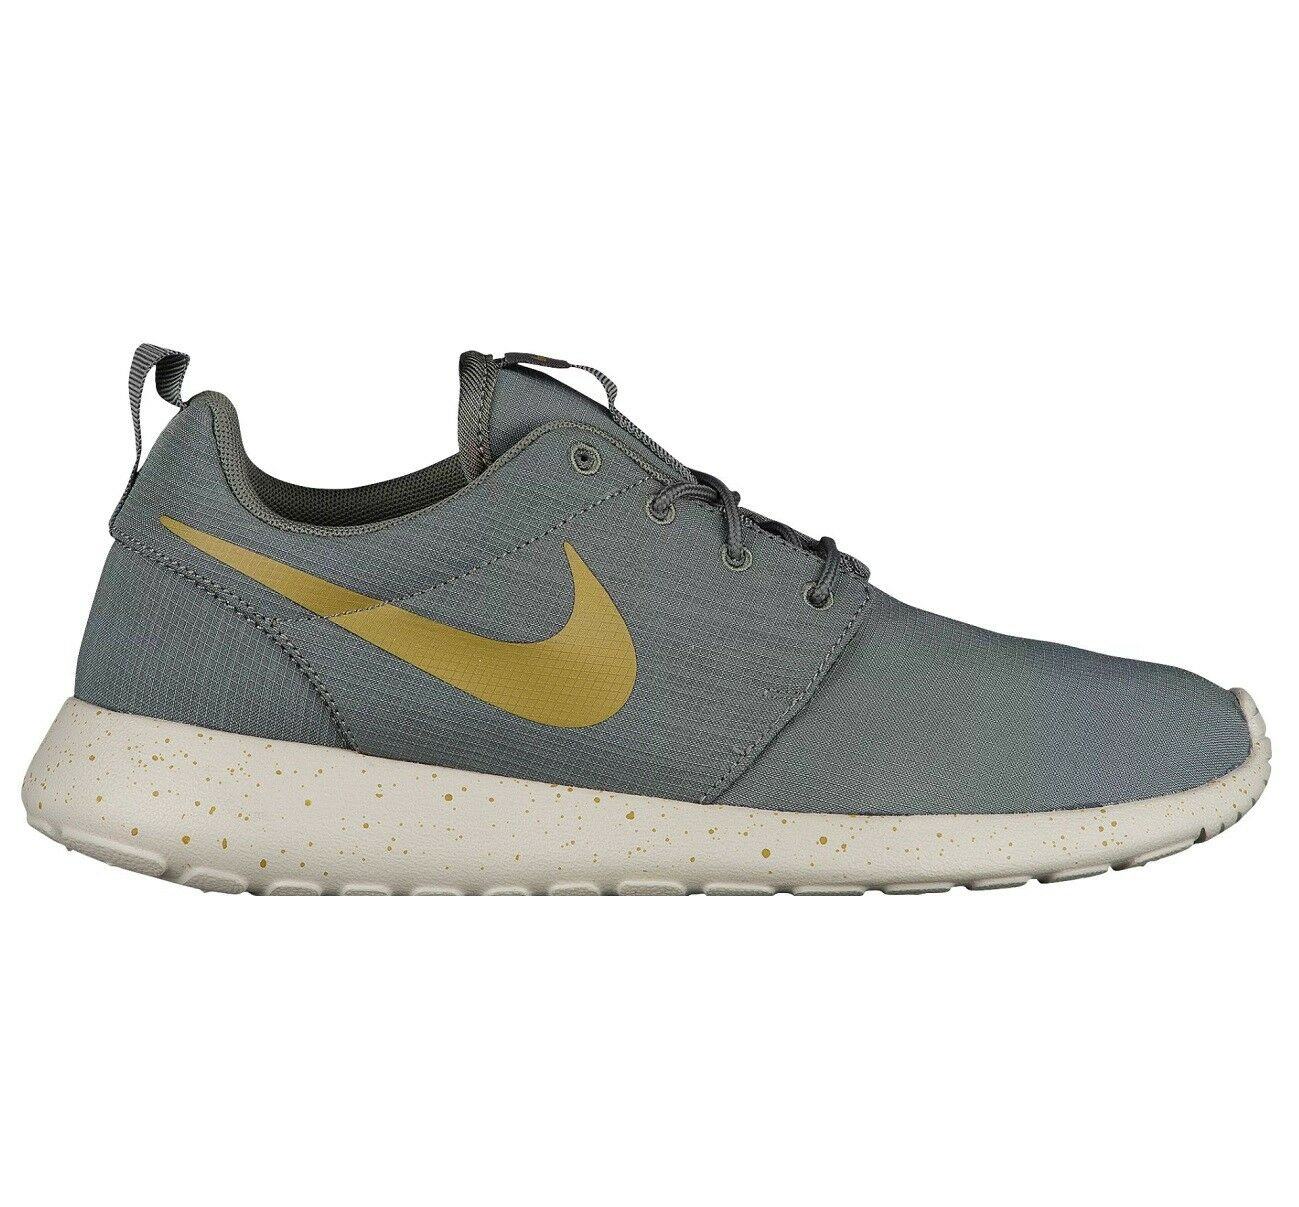 Nike Roshe One SE Mens 844687-008 River Rock Desert Moss Running Shoes Size 9.5